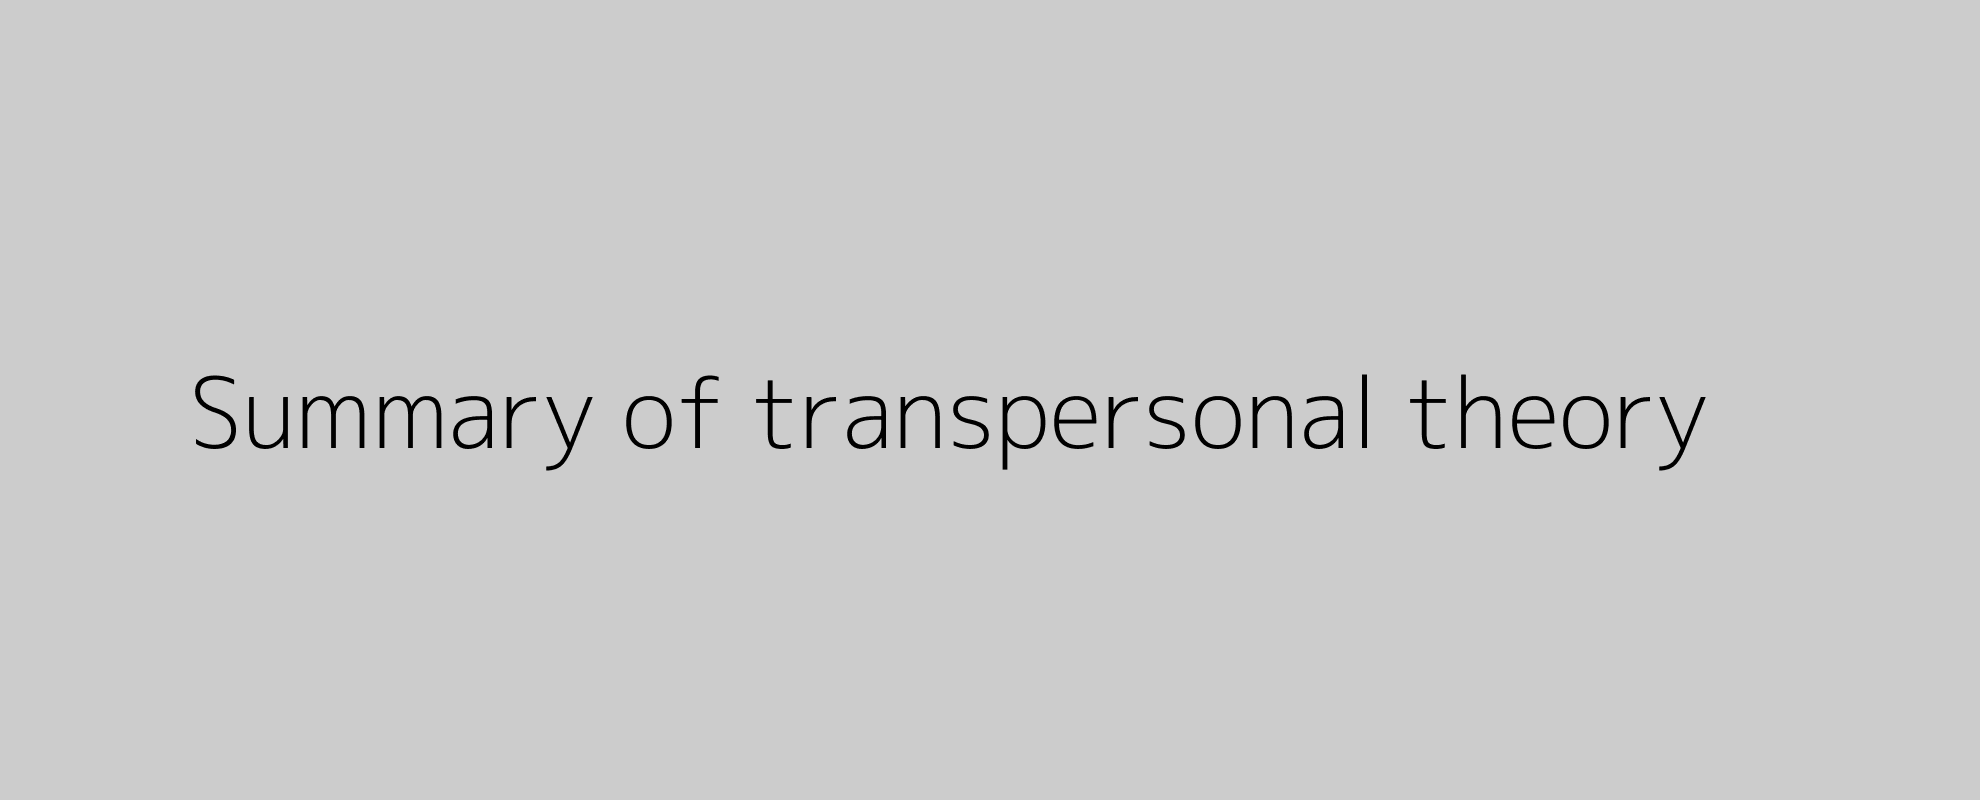 Summary of transpersonal theory